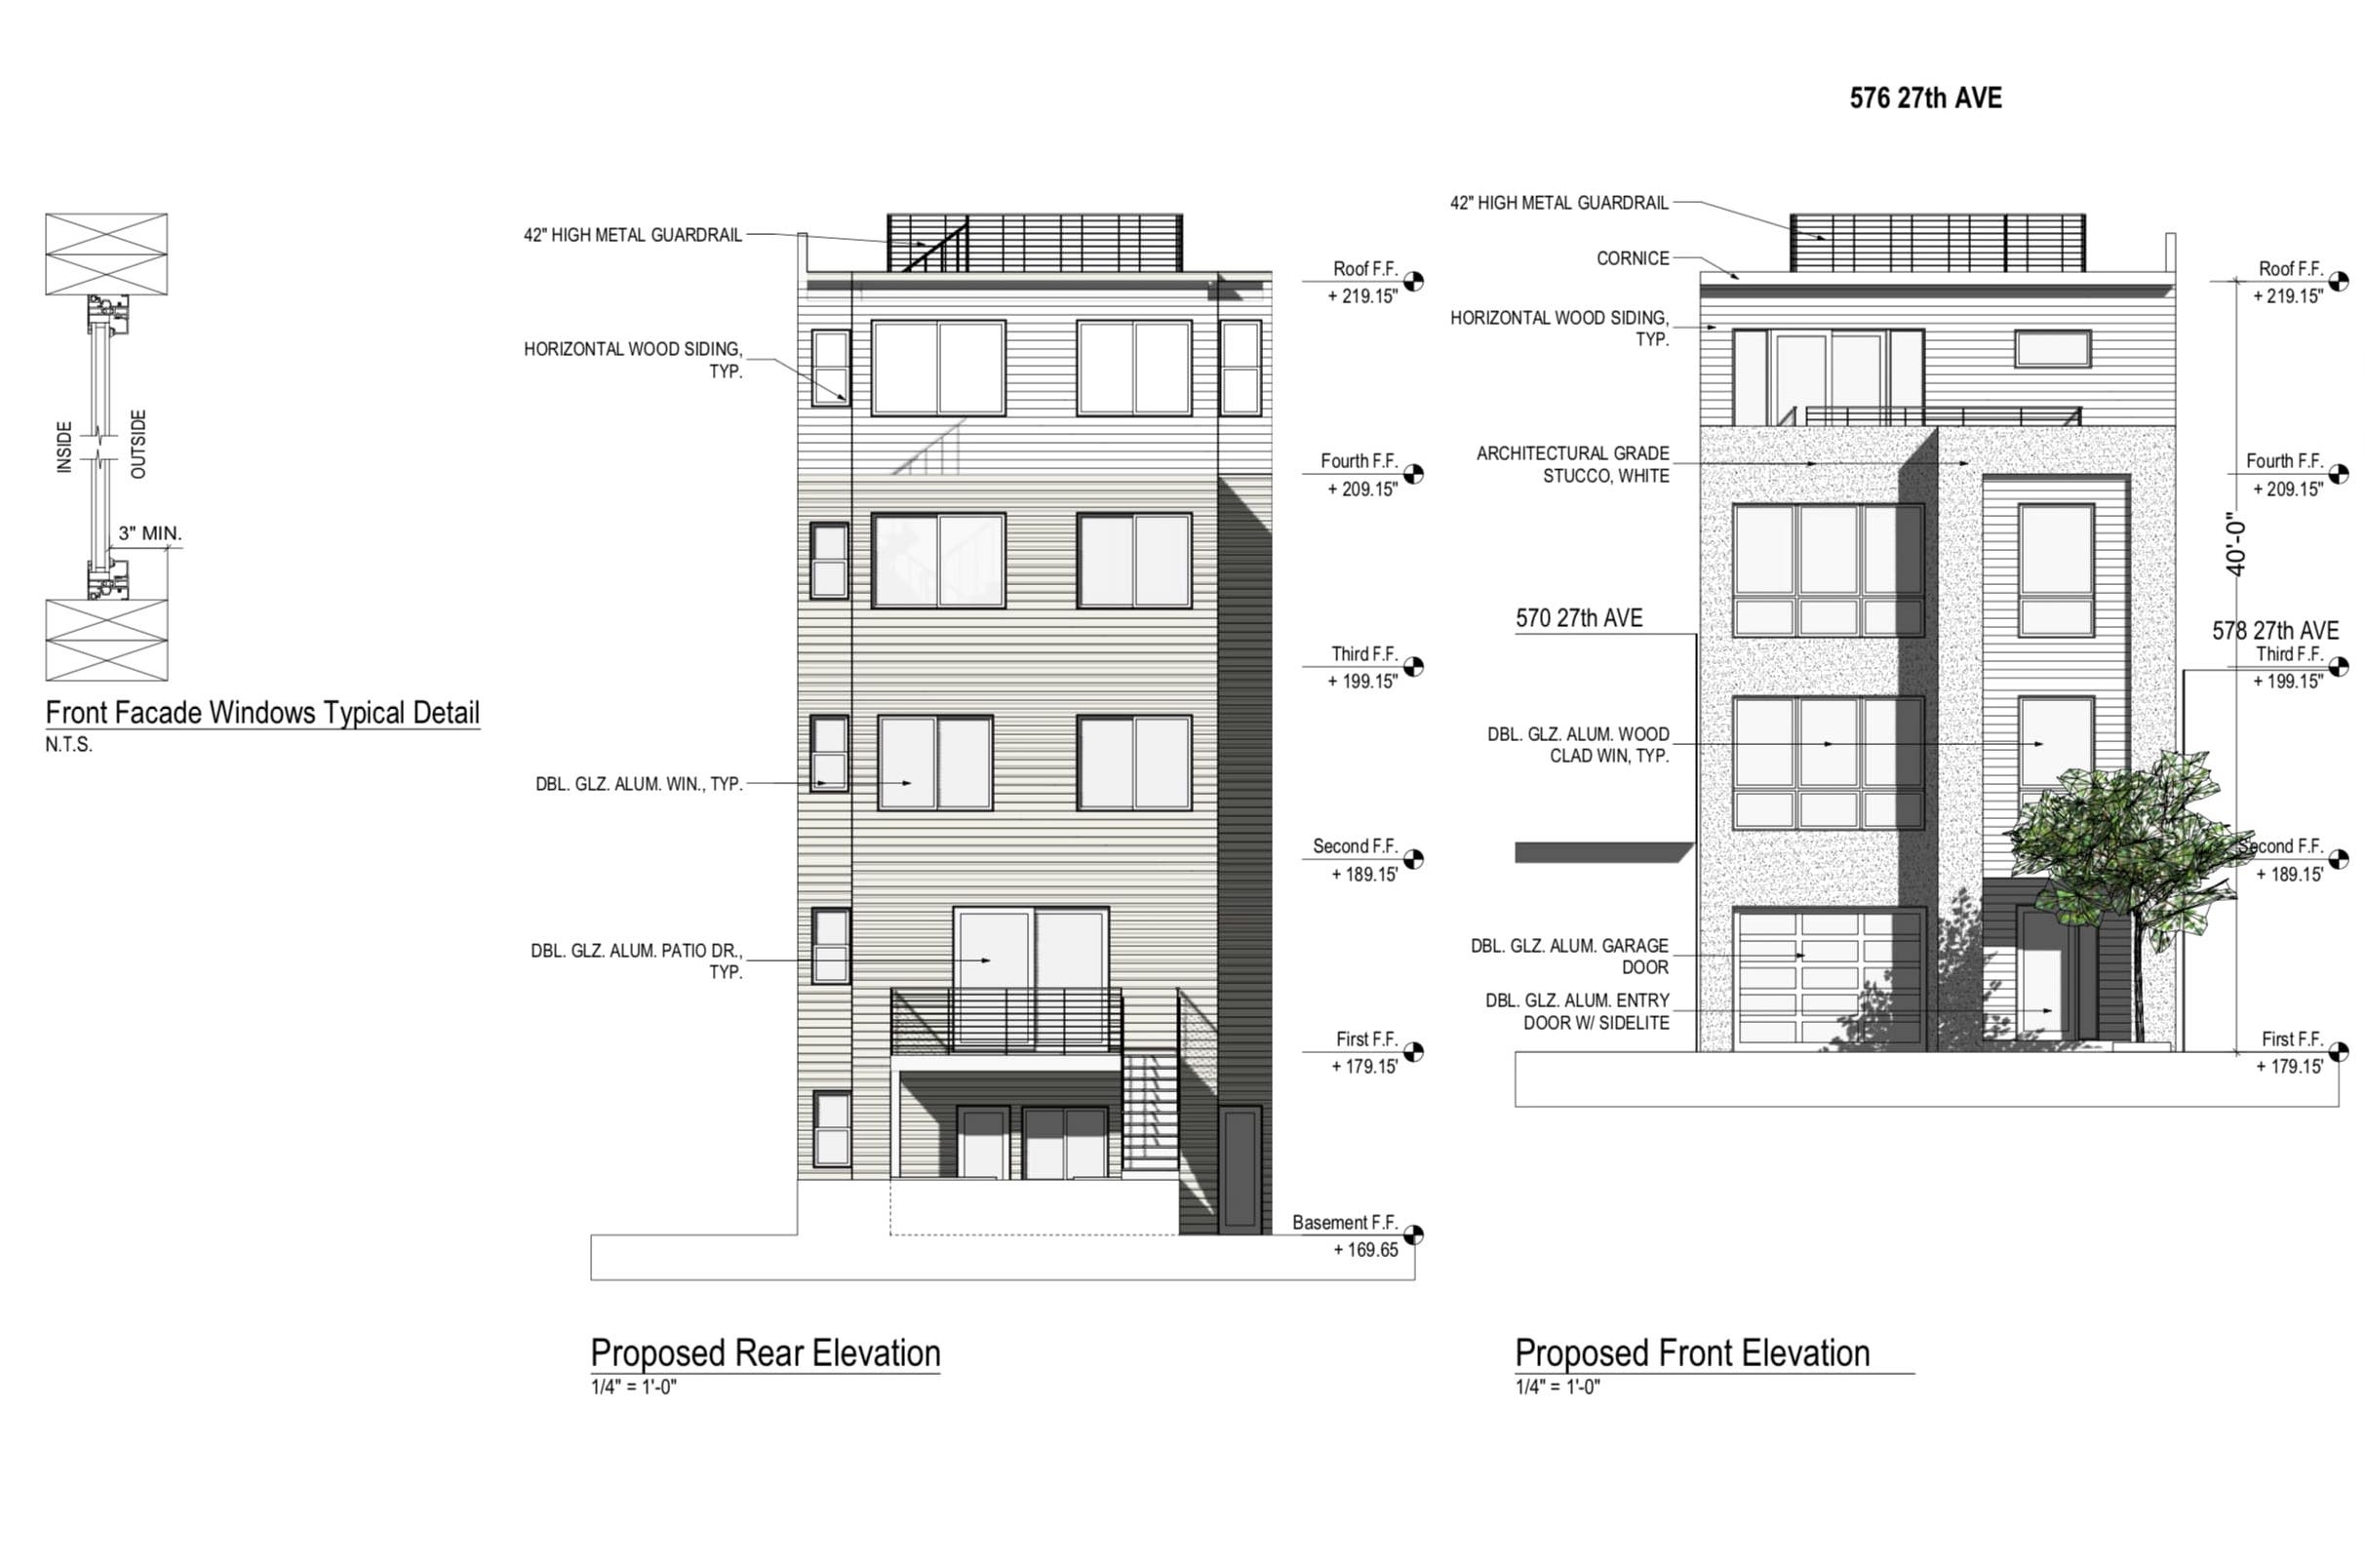 576 27th Avenue Proposed Elevations